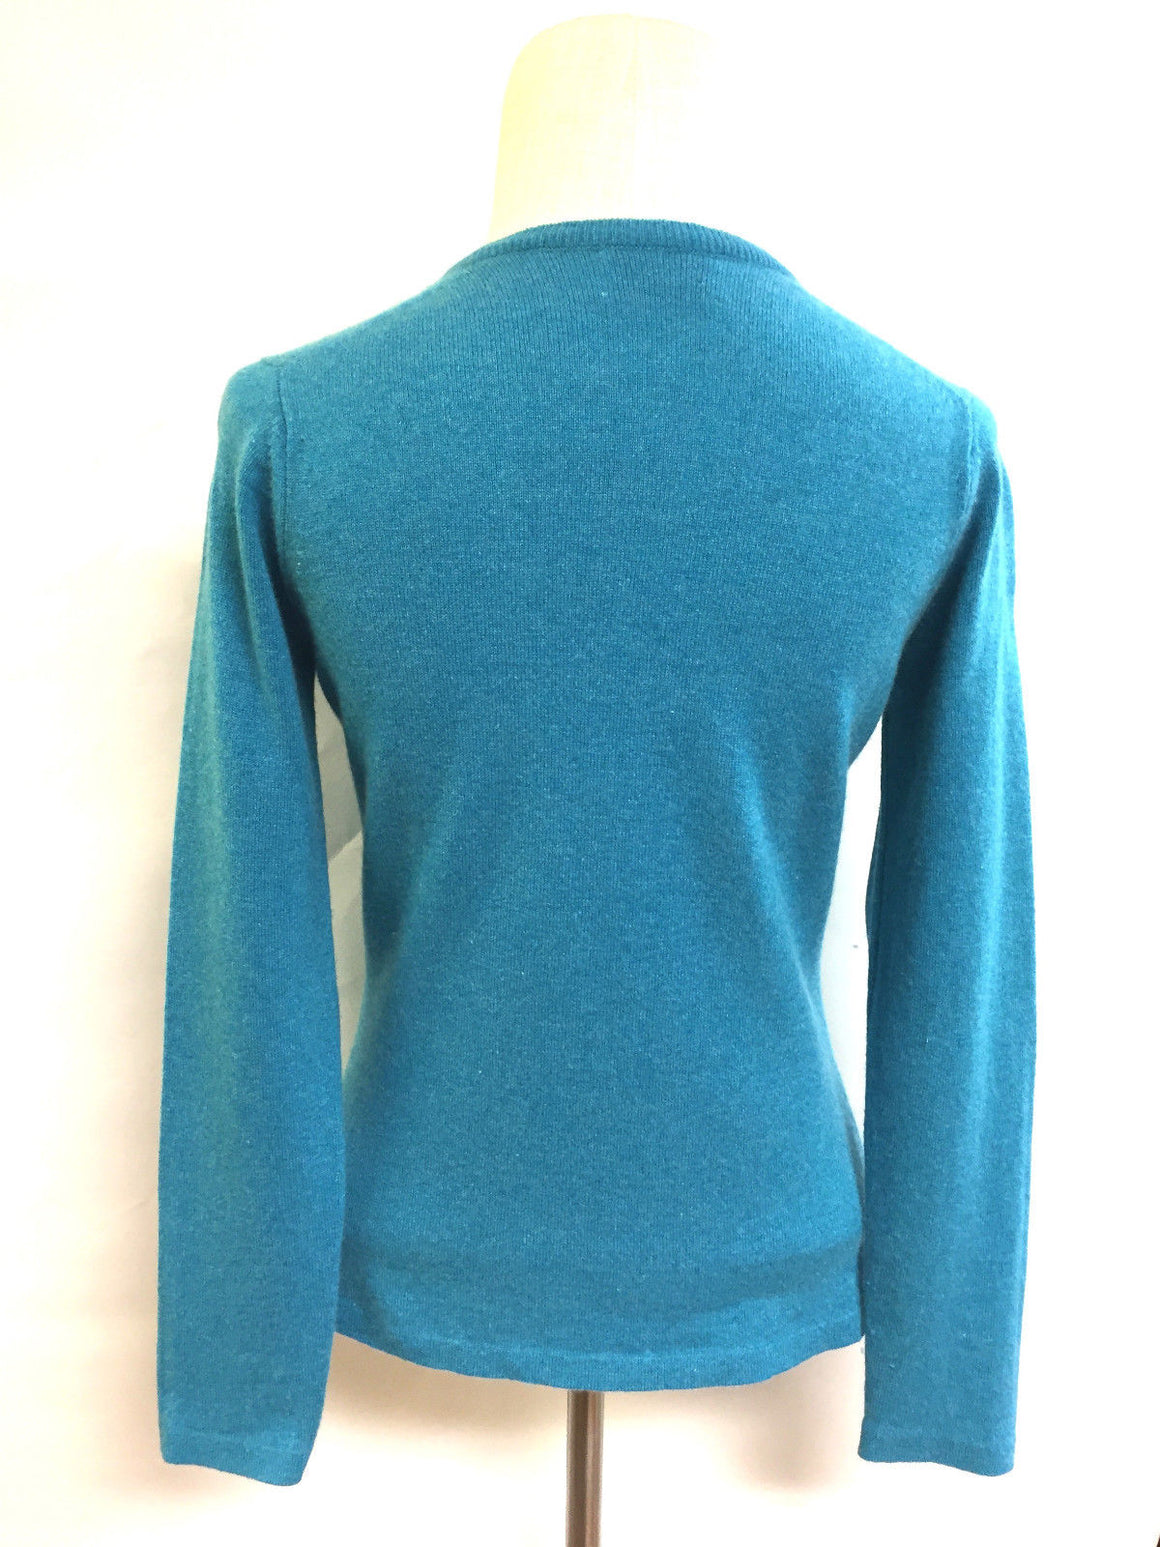 bisbiz.com BRORA Turquoise Cashmere V-Neck Cardigan Sweater Top  Size: UK10 / US Small - Bis Luxury Resale